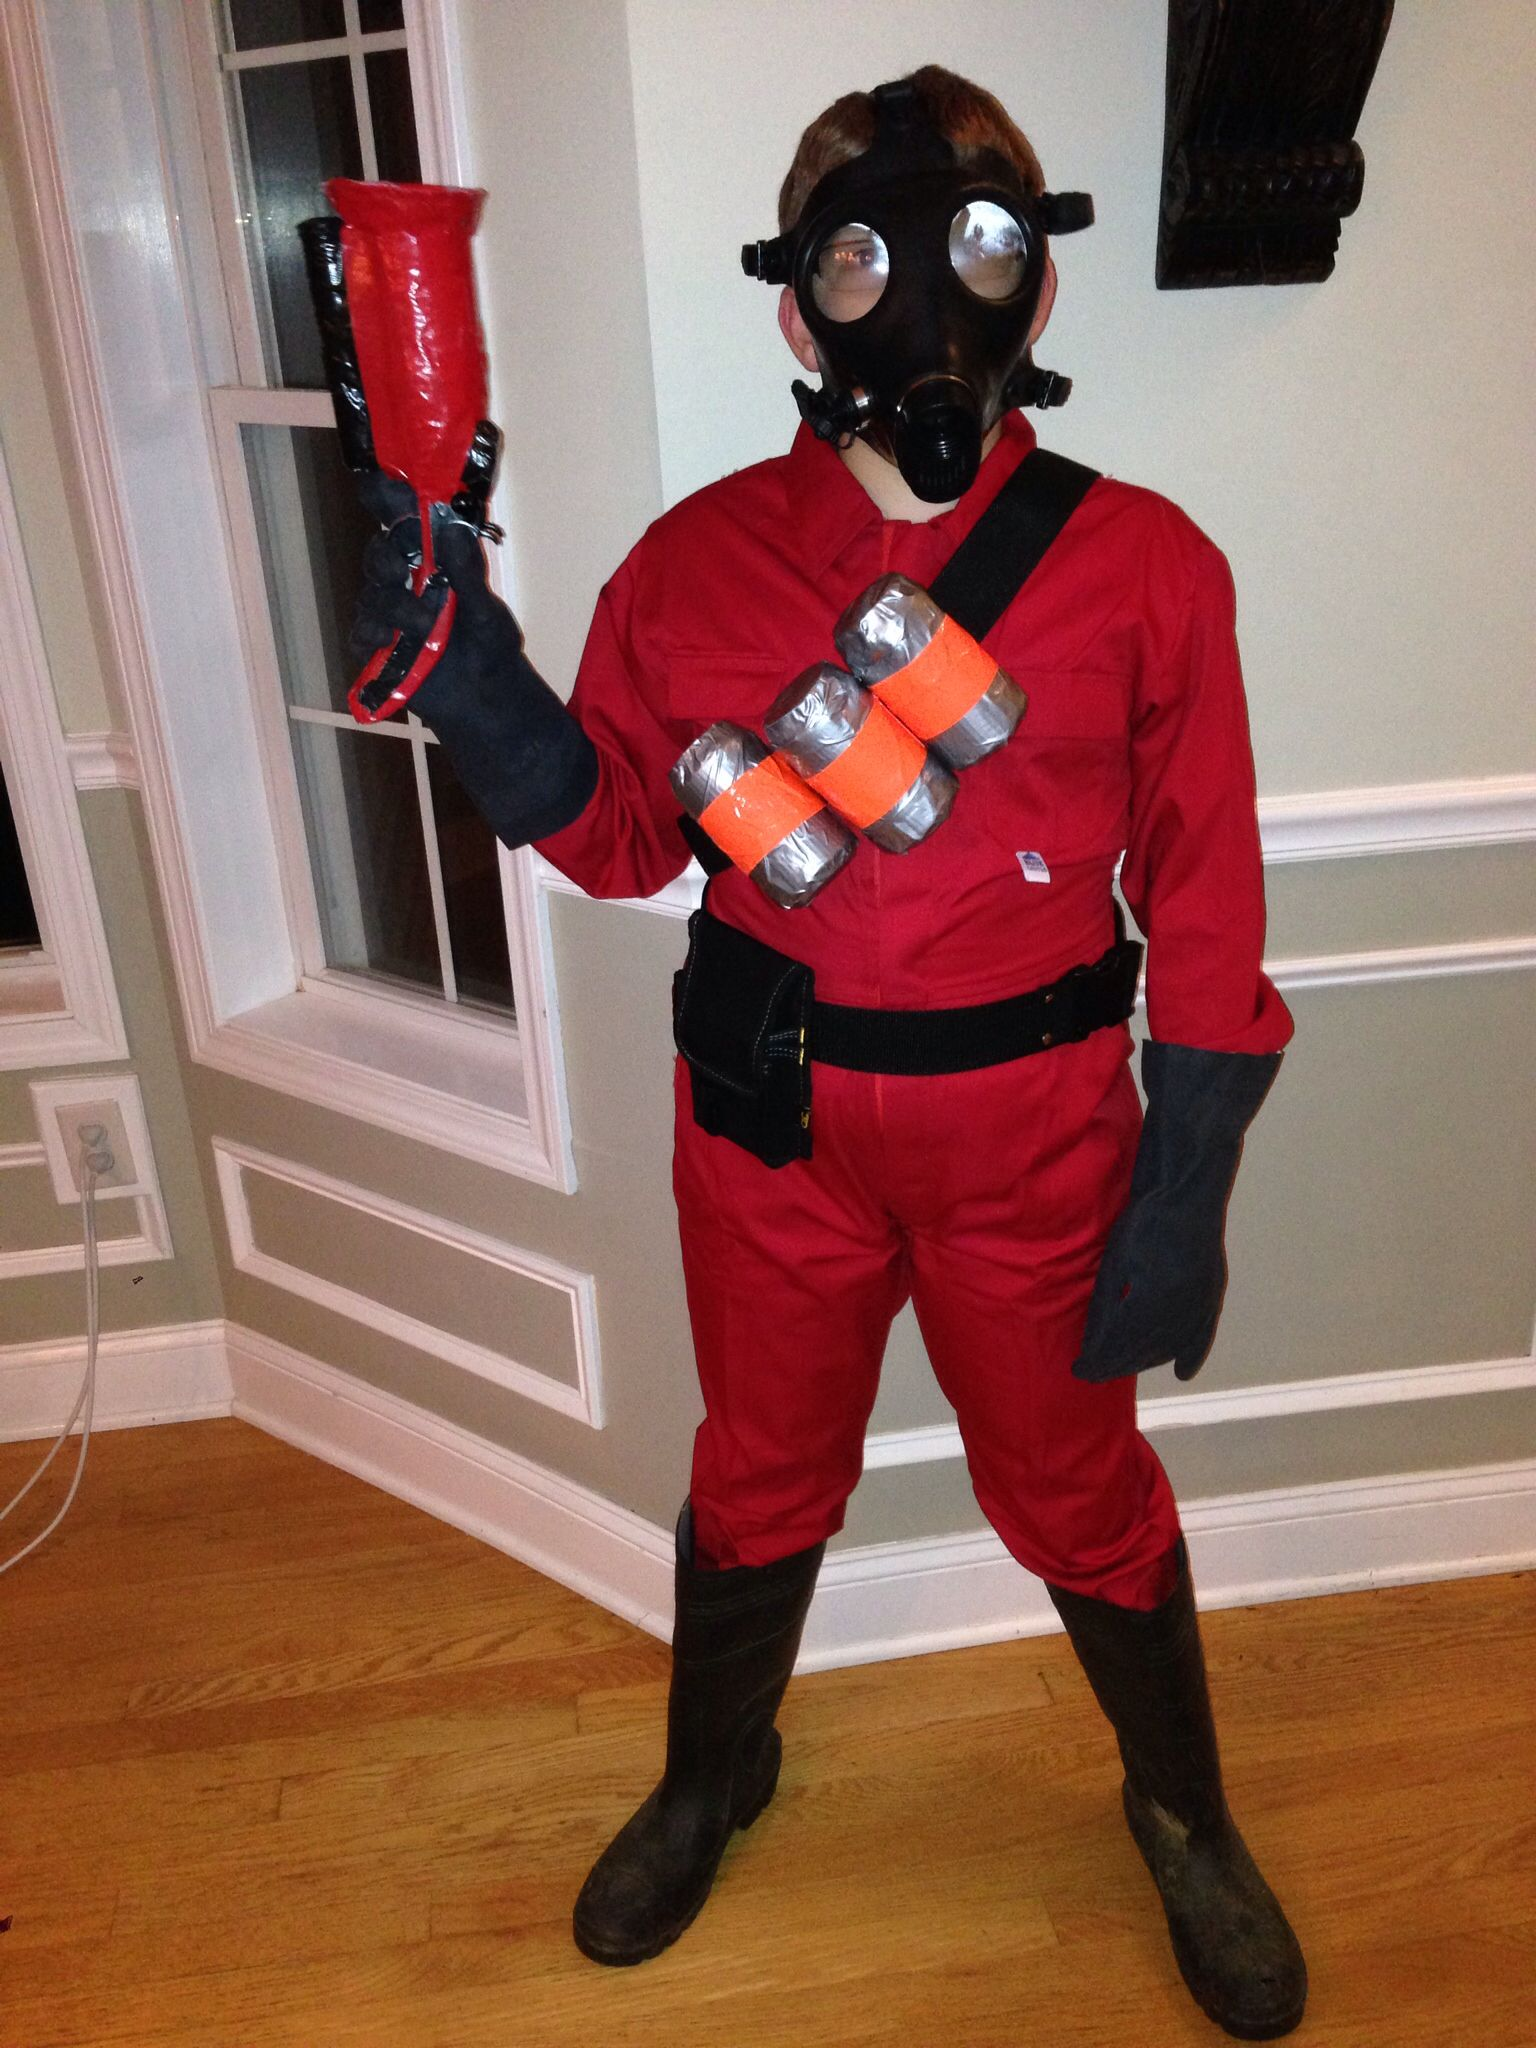 Tf2 pyro Halloween costume for comic con 2013 NYC. | Tf2 pyro ...